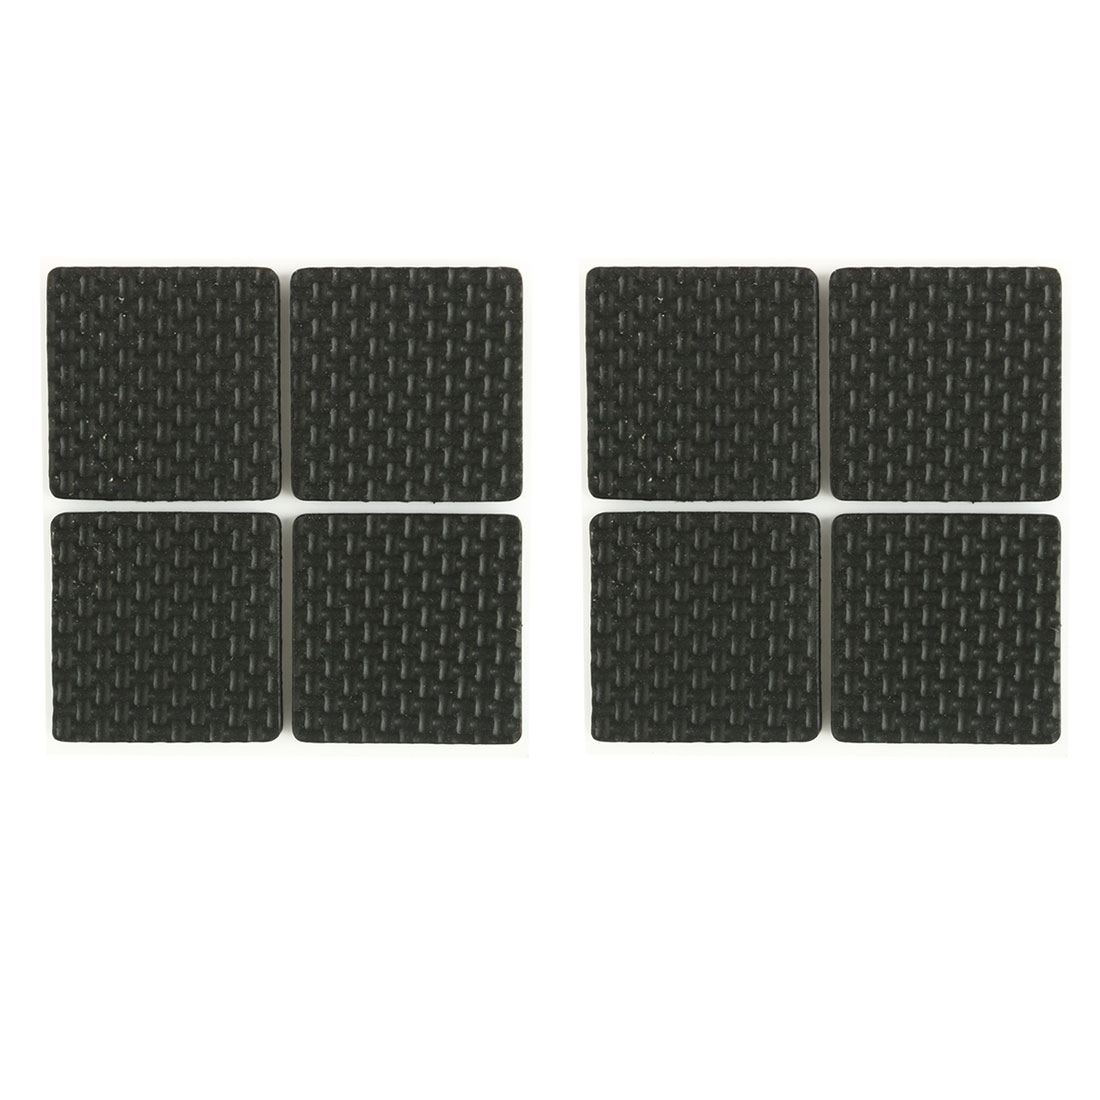 8 in 1 Black Protective Furniture Table Chair Foot Square Pad